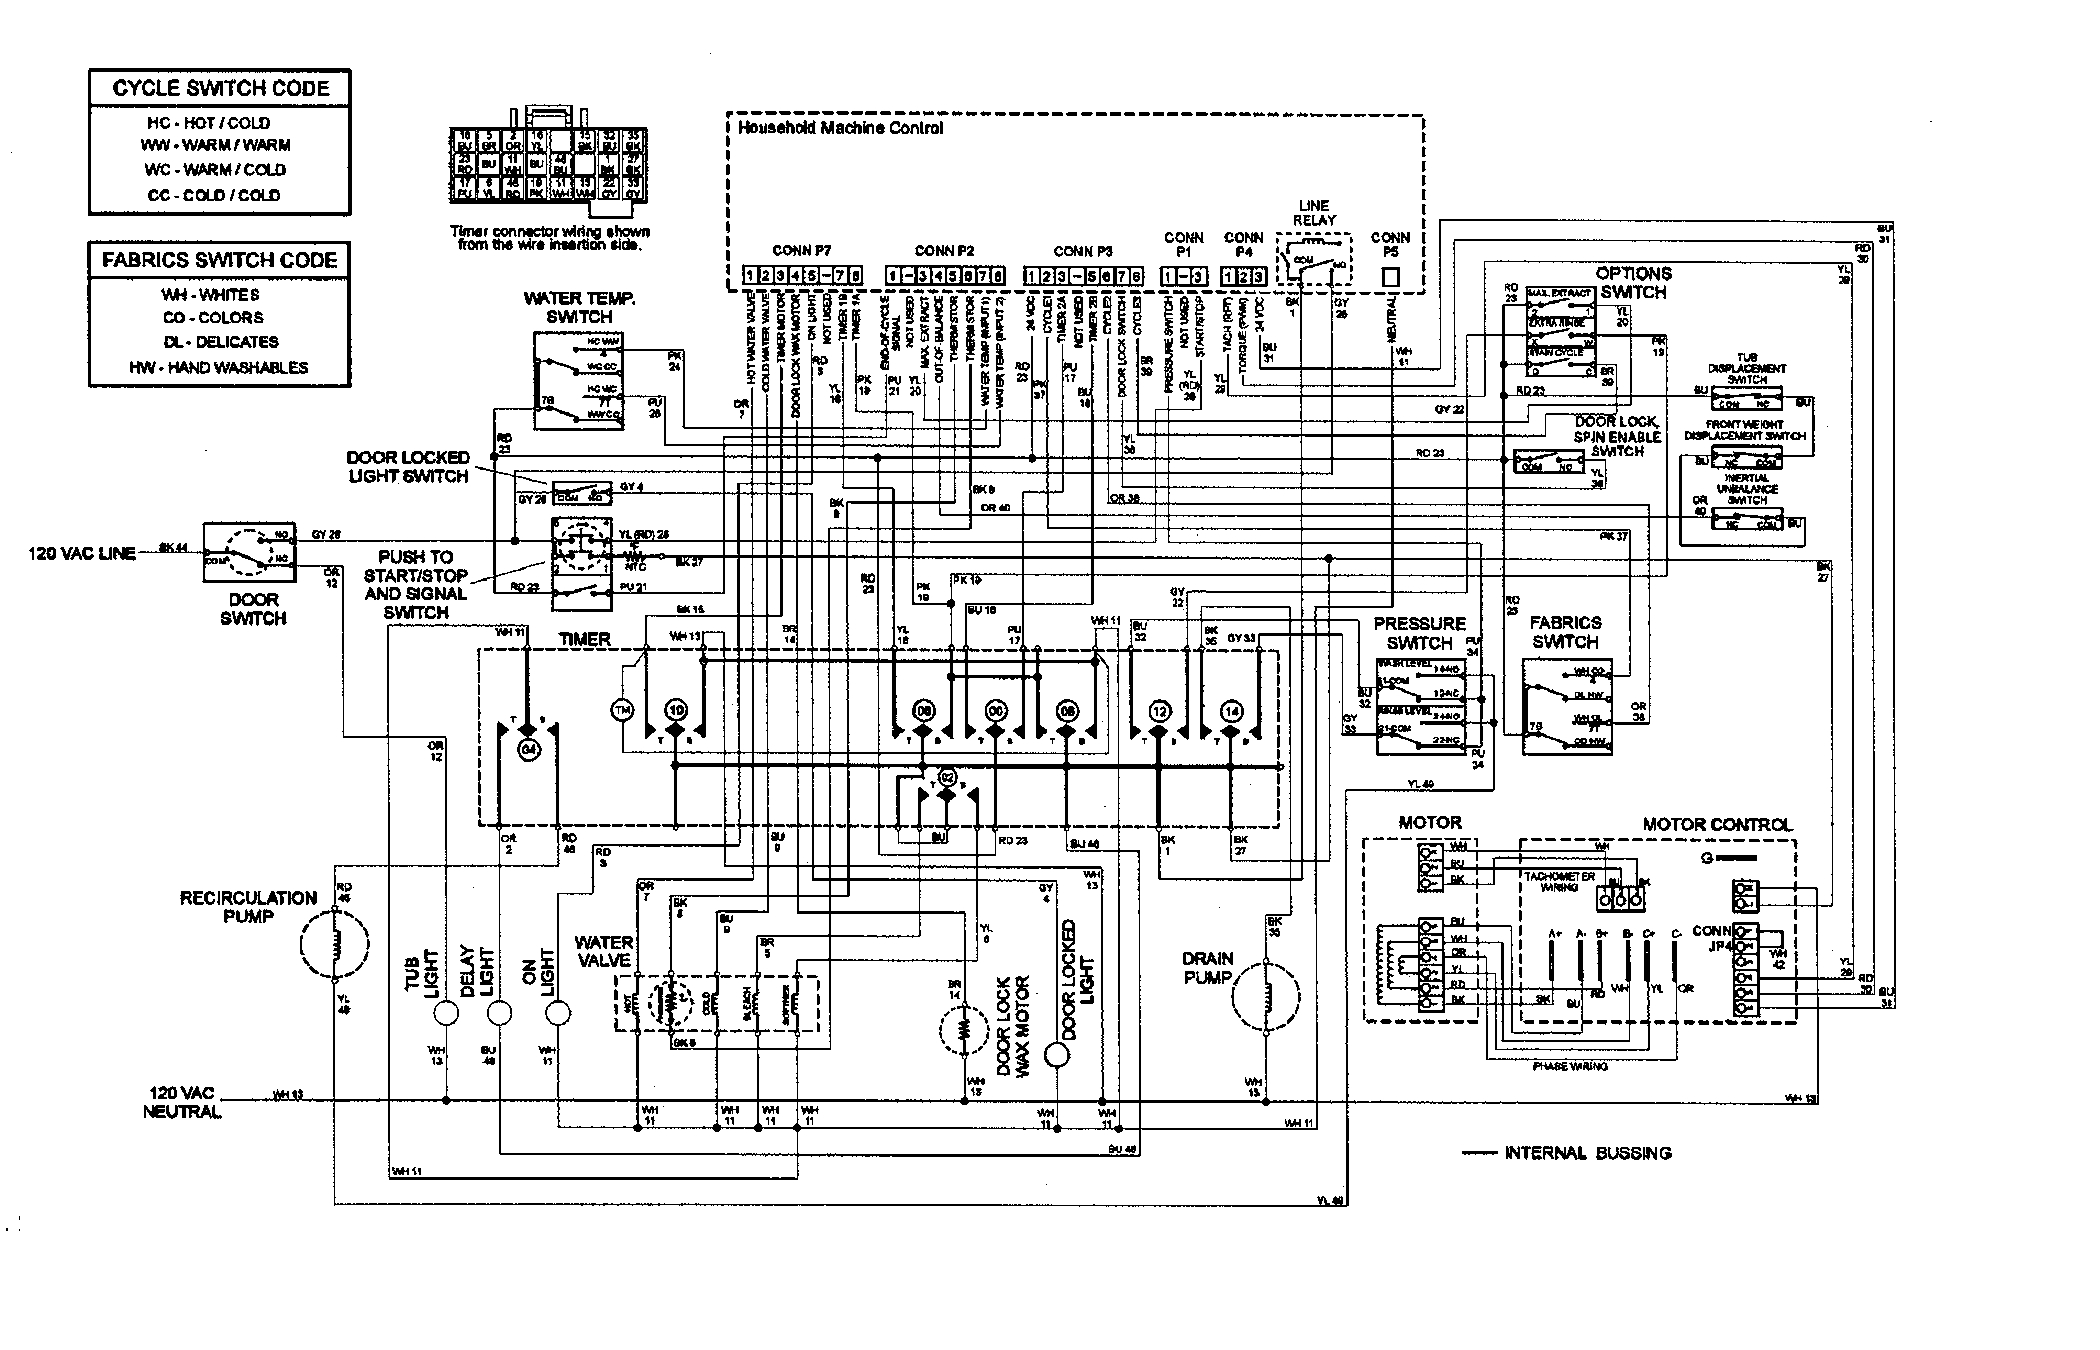 Maytag Centennial Washer Wiring Diagram Collection